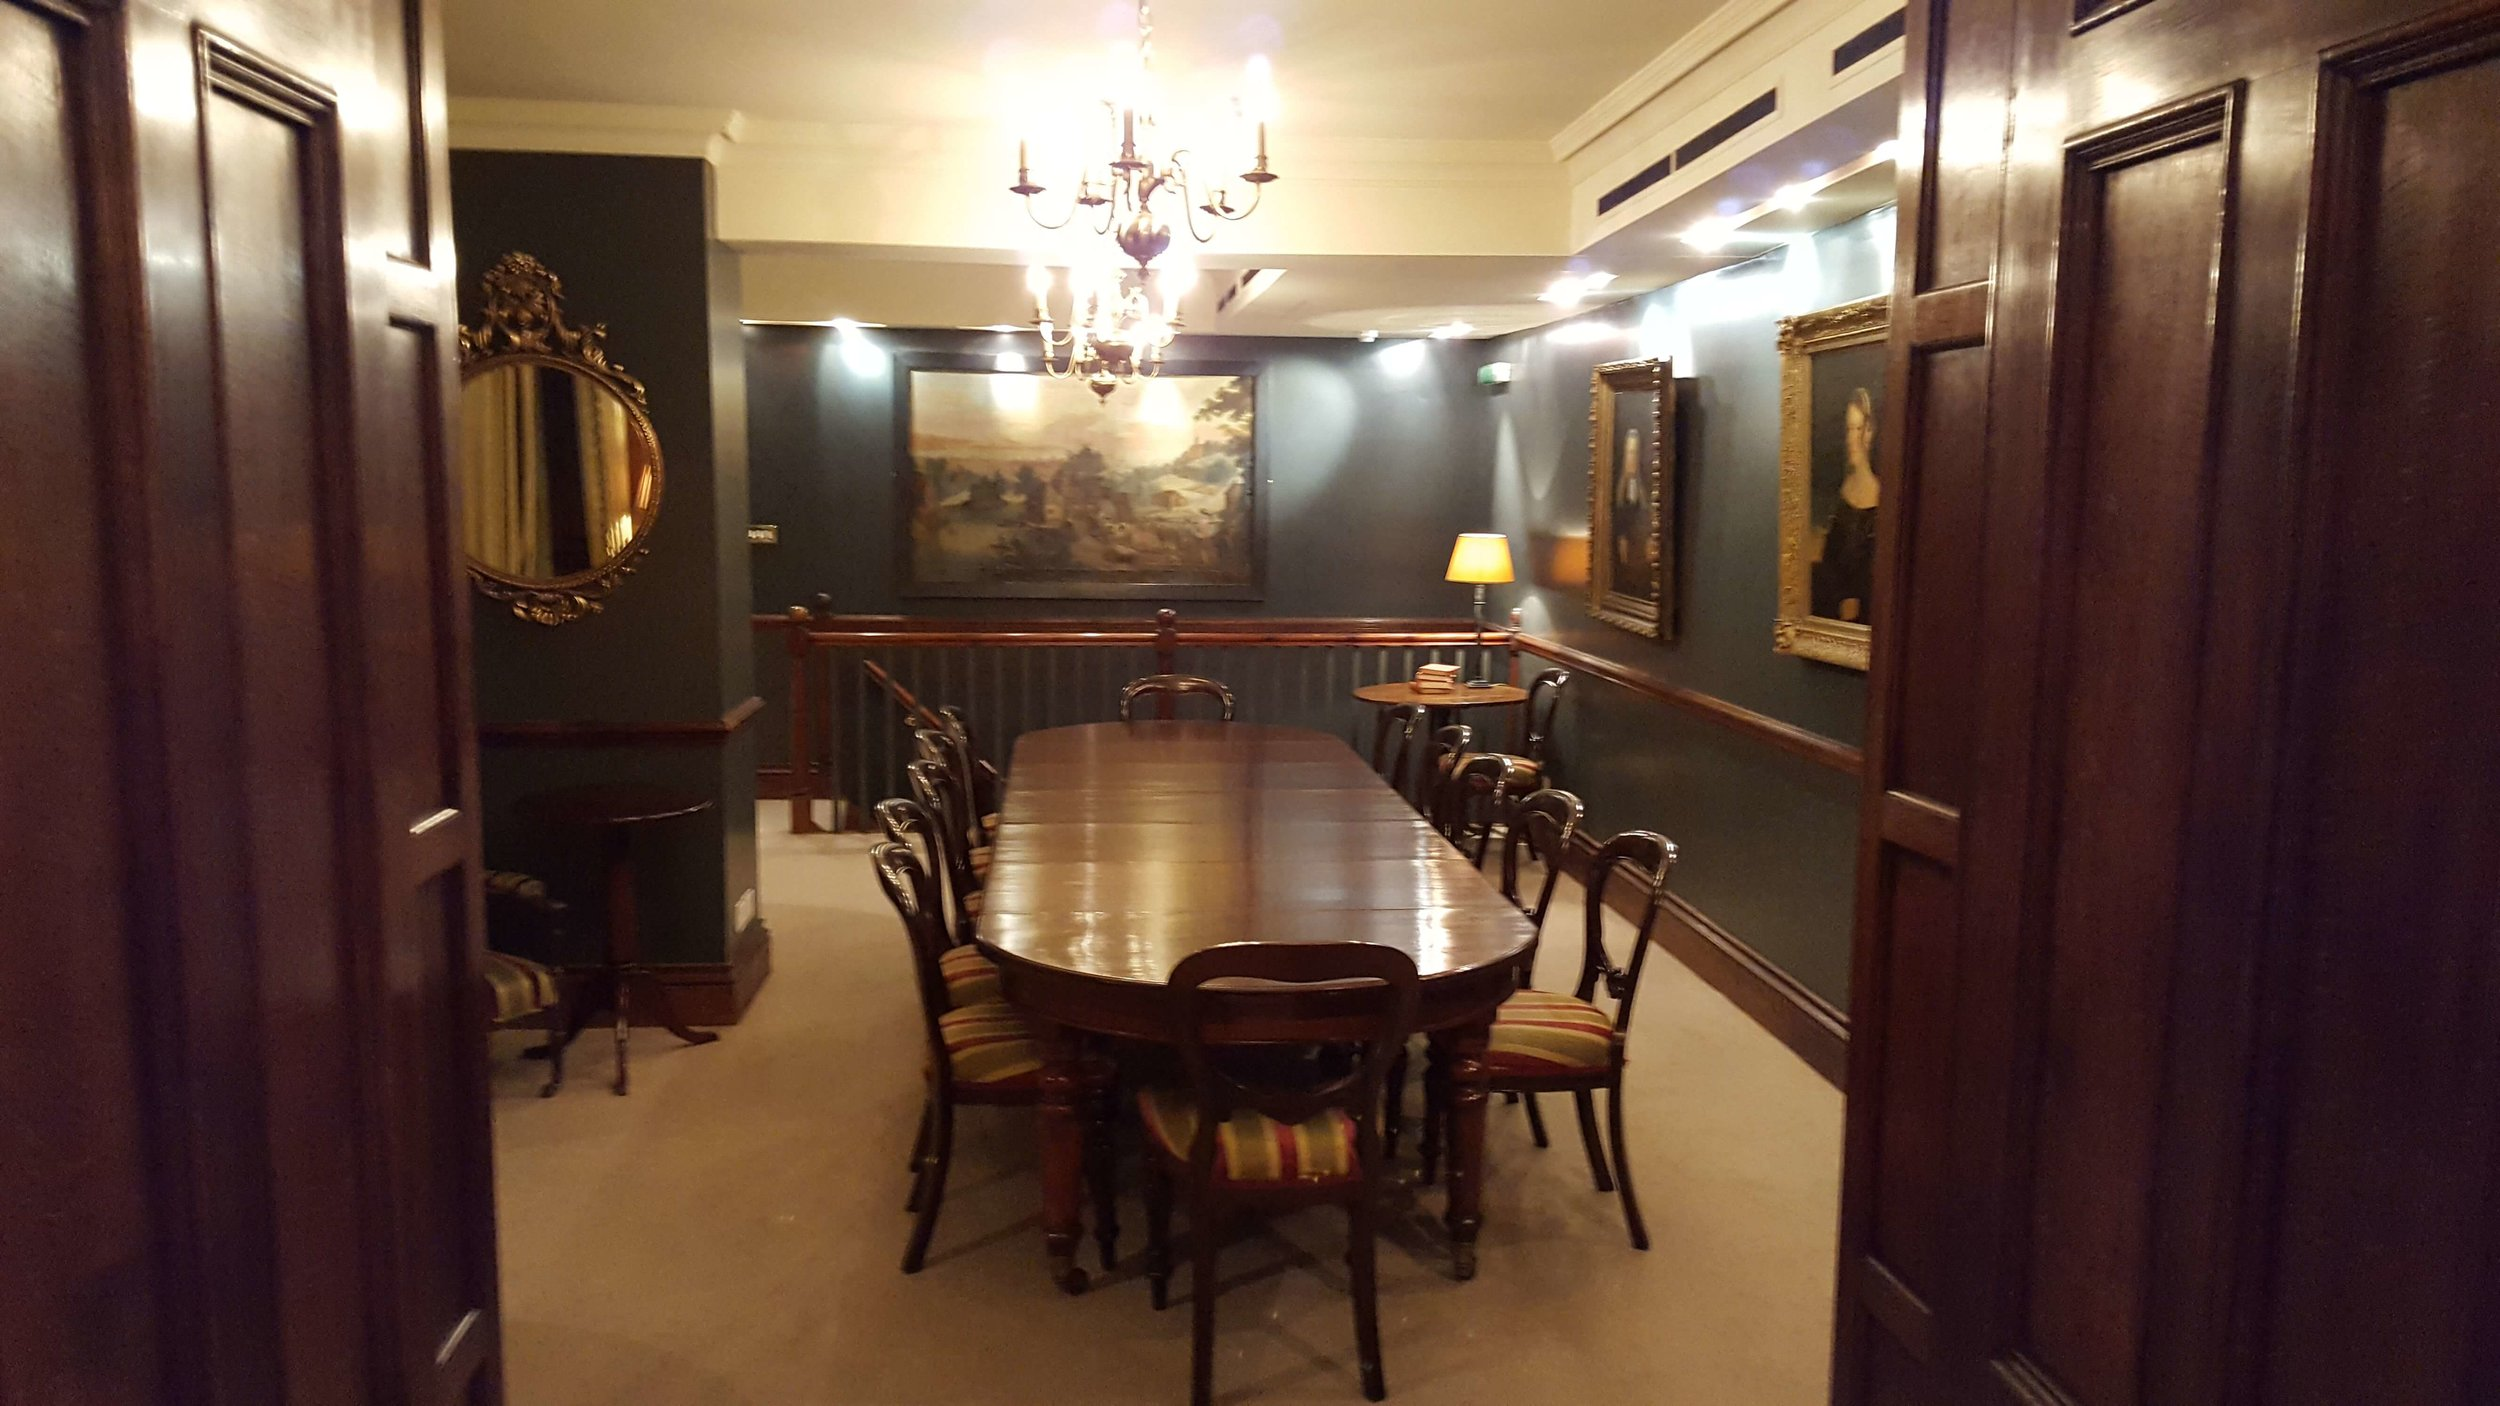 This the round table where we'll meet each morning, inspired by the formidable women portrayed on the walls.